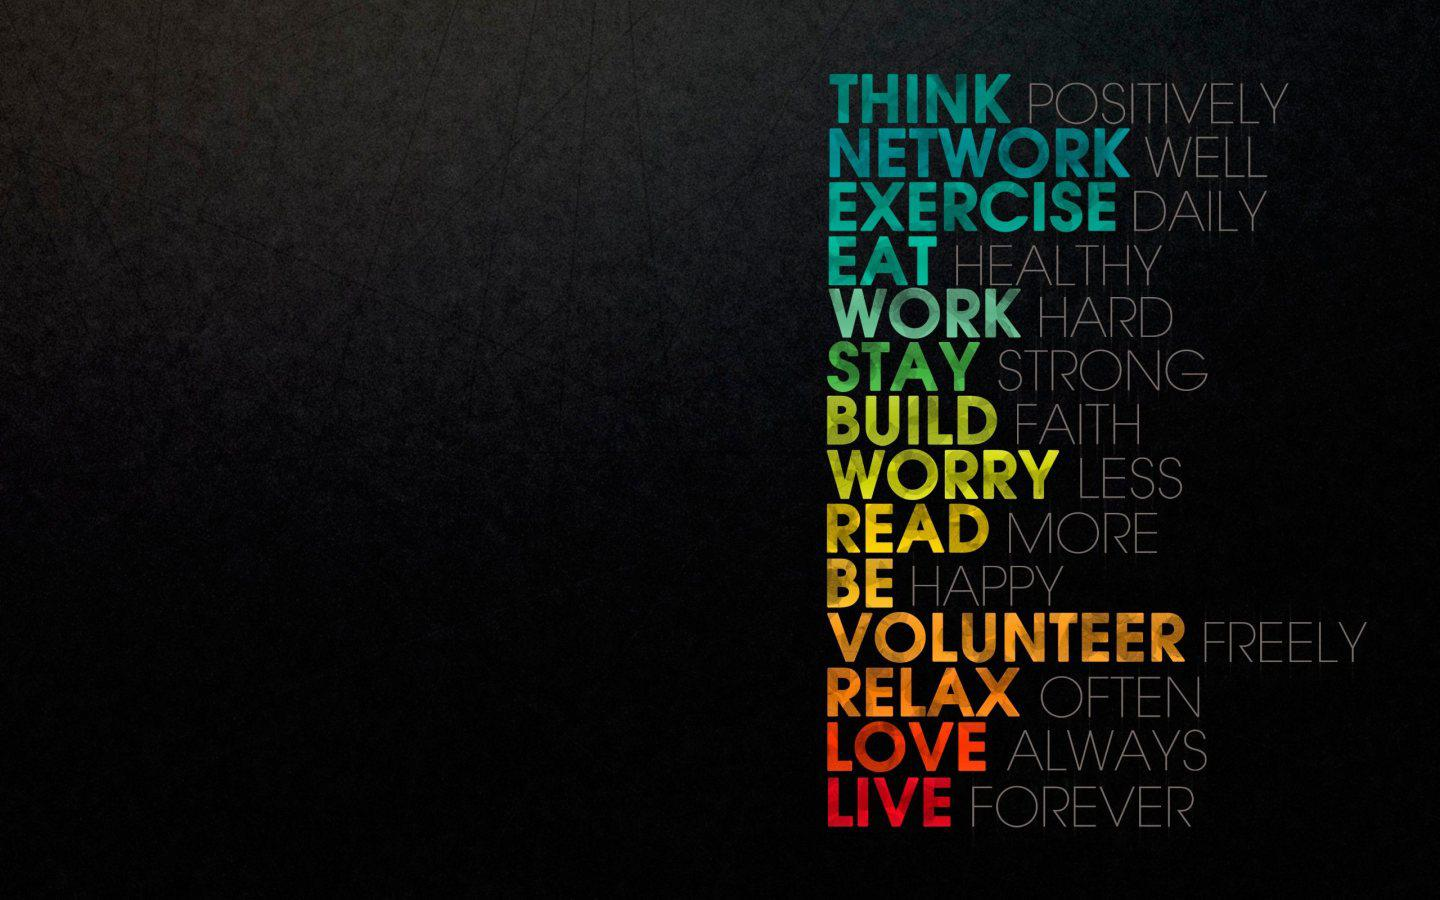 Quotes hd wallpapers movie hd wallpapers - Hd wallpapers for laptop with quotes ...